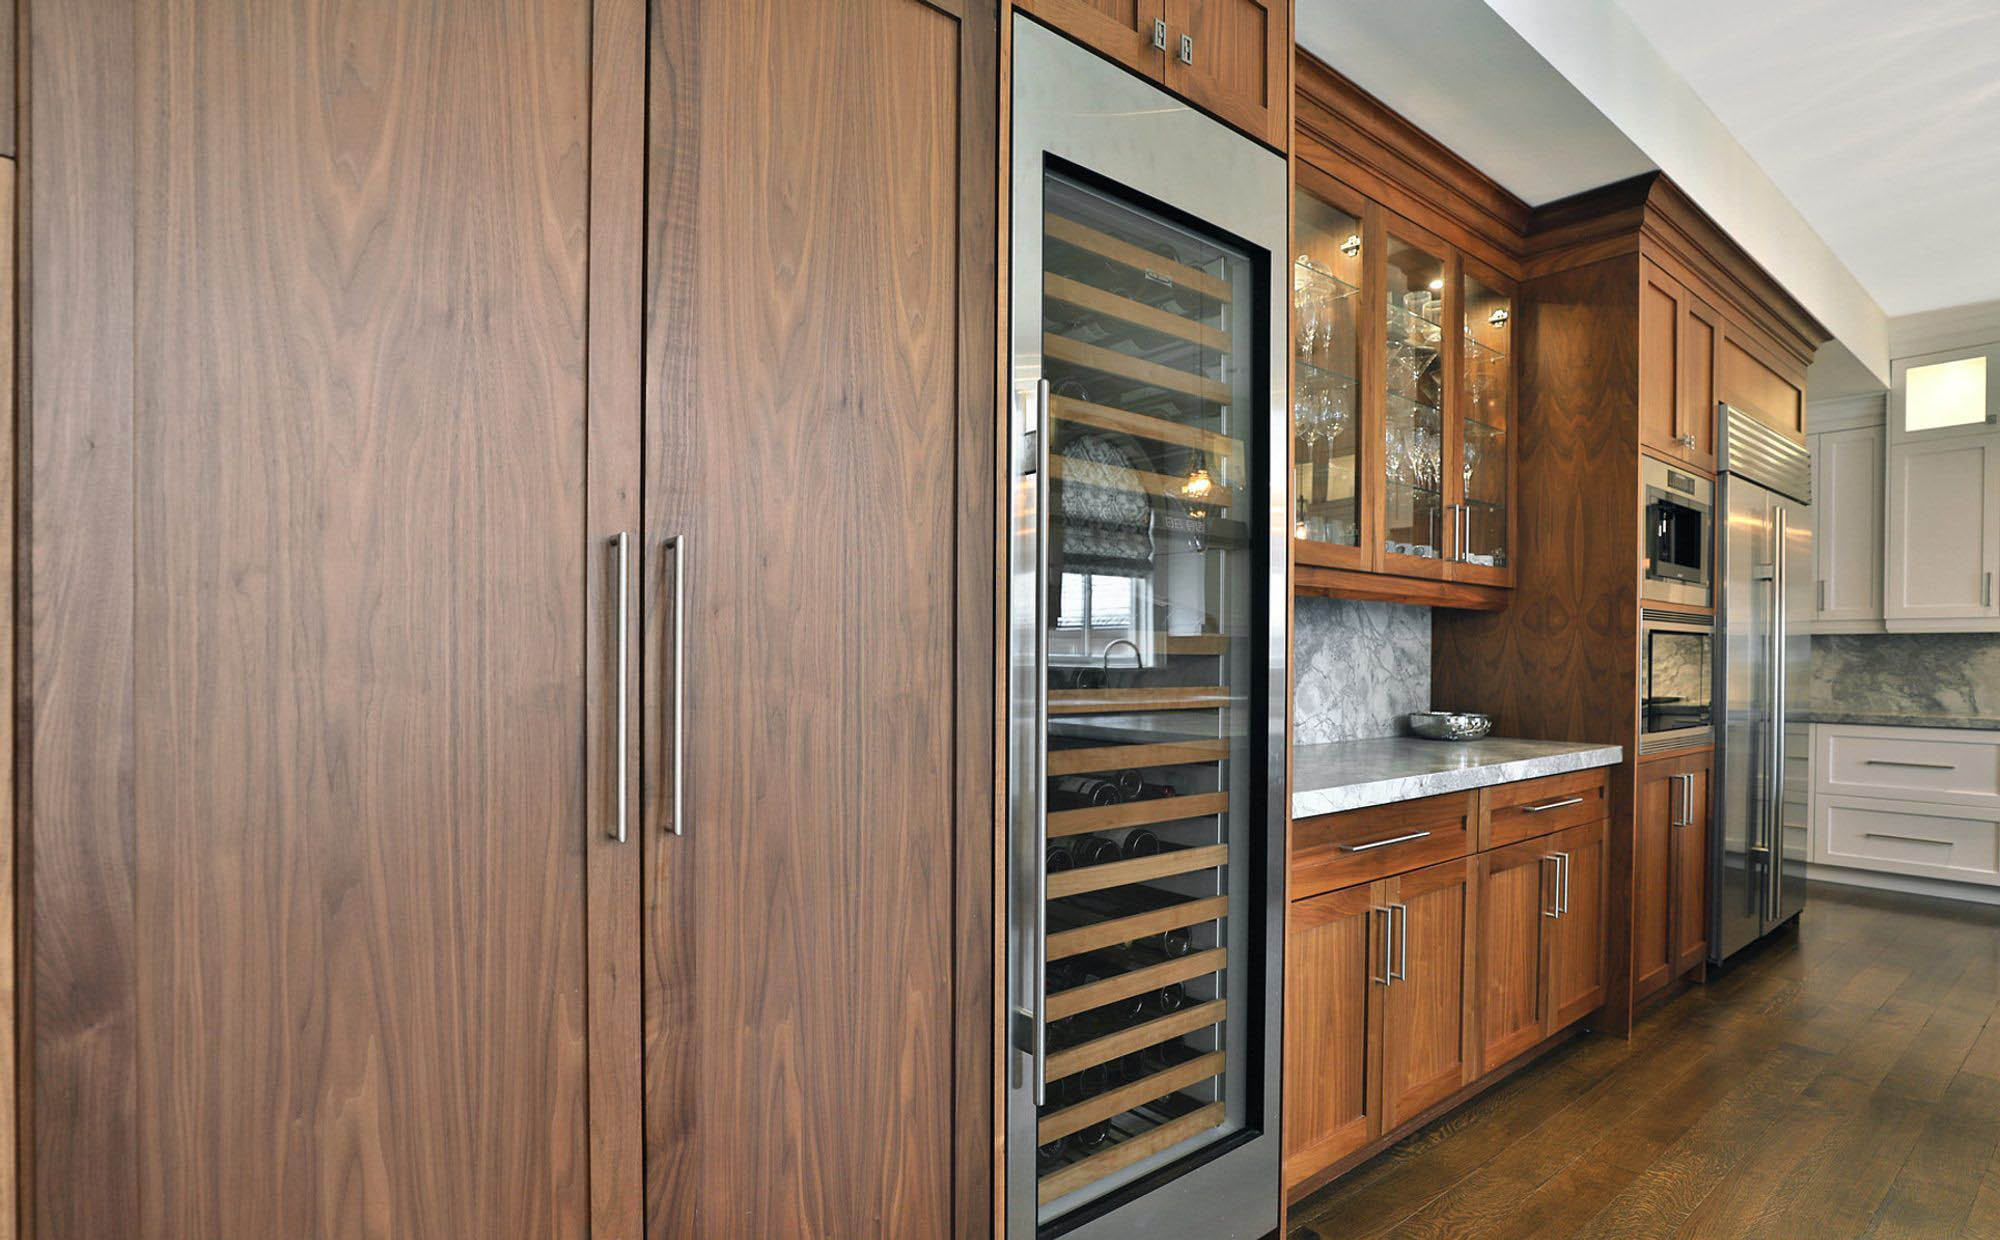 Beautiful wood cabinetry and built in refrigerator door panels. Rich brown stain with an egg shell varnish.